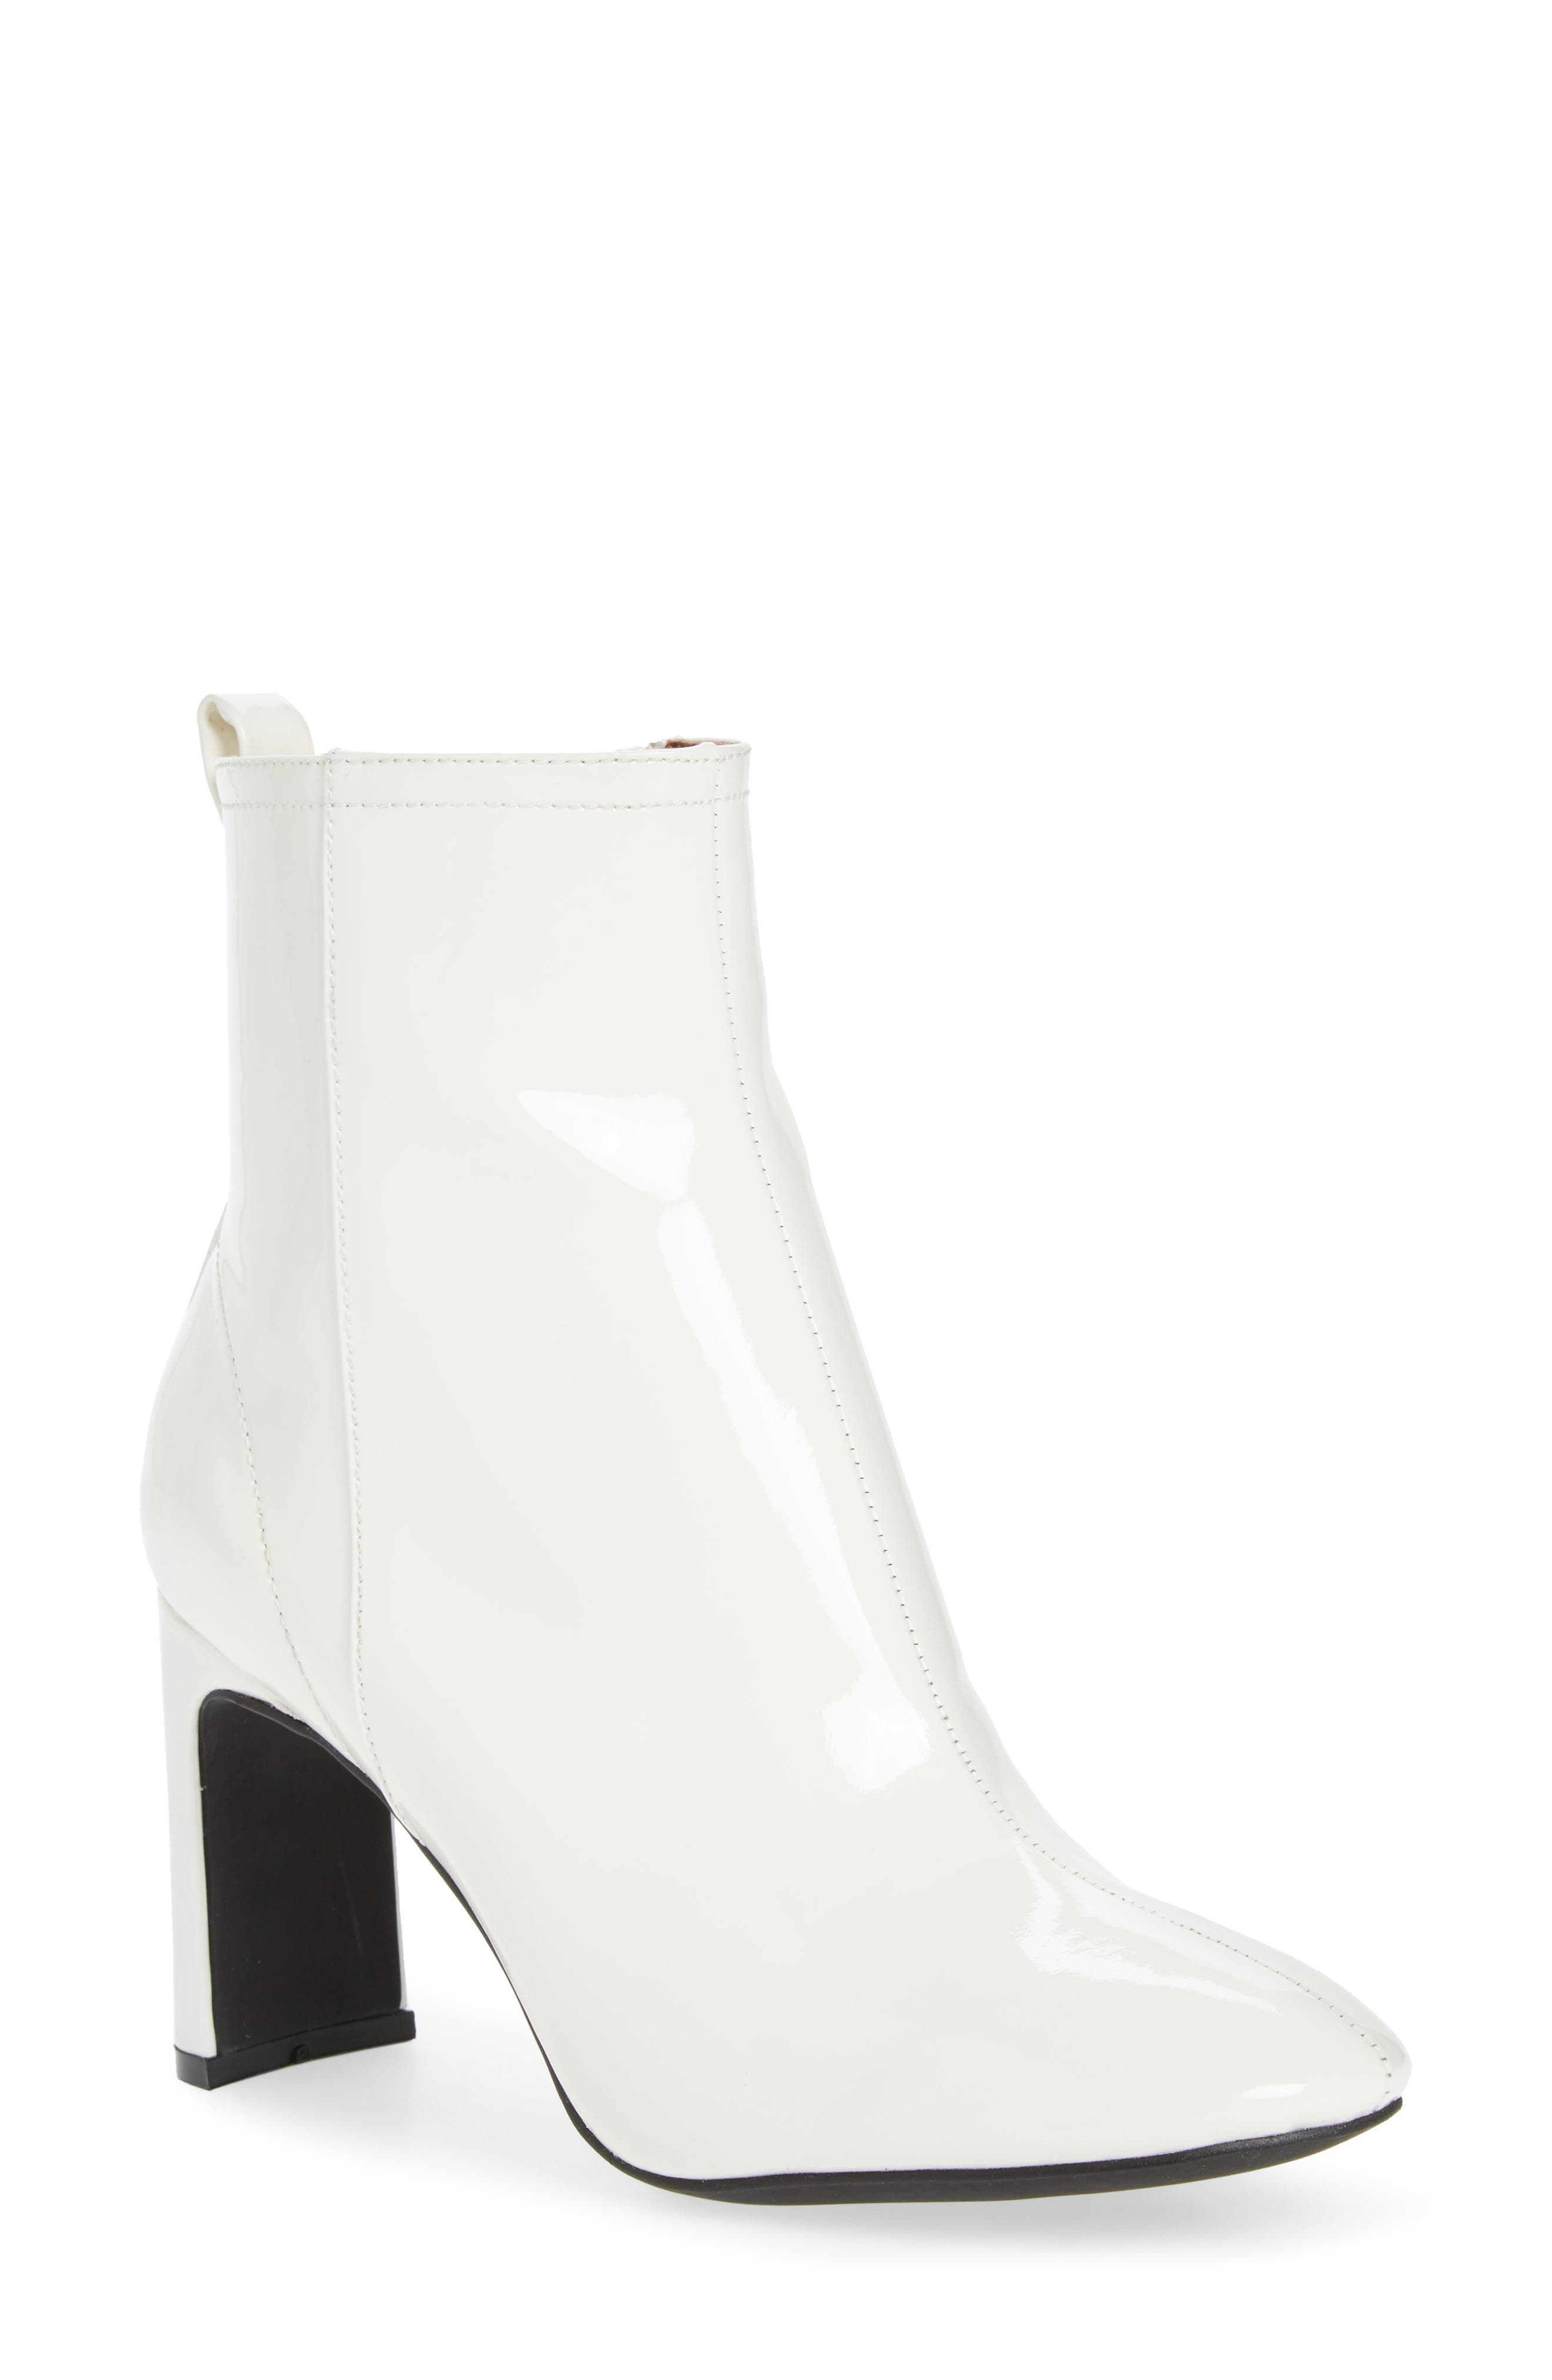 Chapel Curved Heel Bootie,                         Main,                         color, White Patent Leather